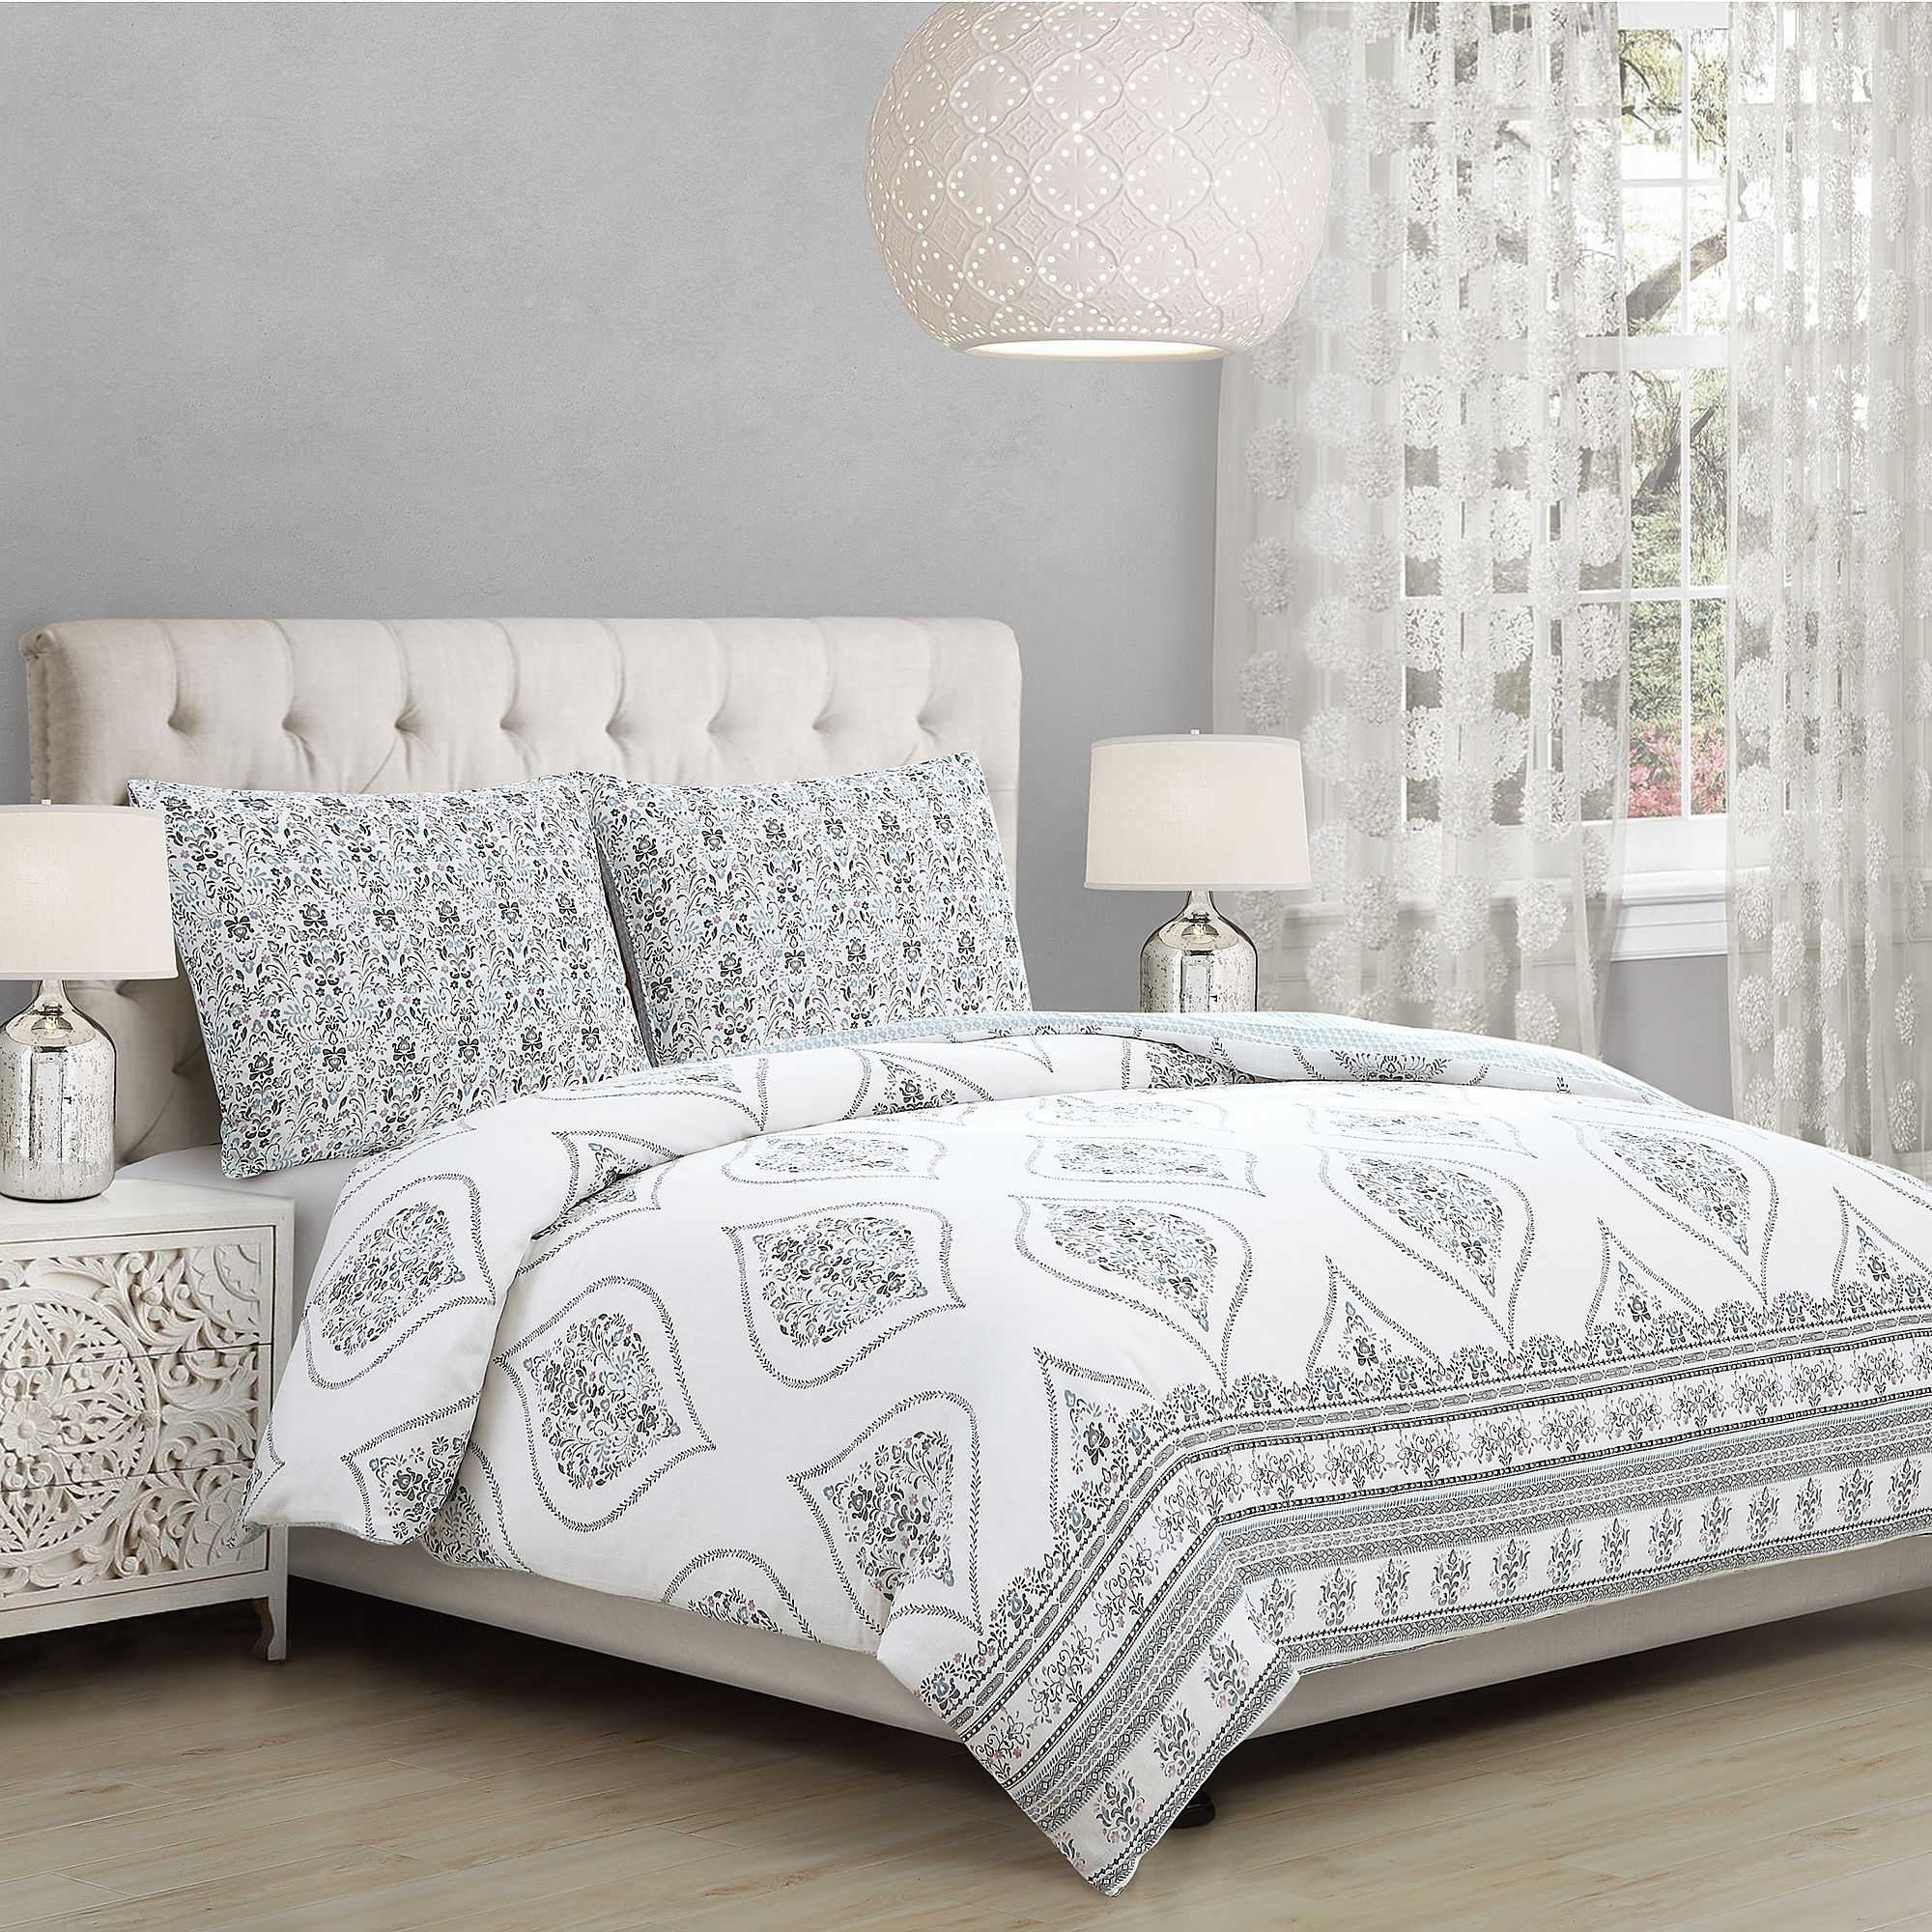 Solange Twin Twin Xl Comforter Set In White Grey Comforter Sets Home Decor Bedroom Bedroom Decor